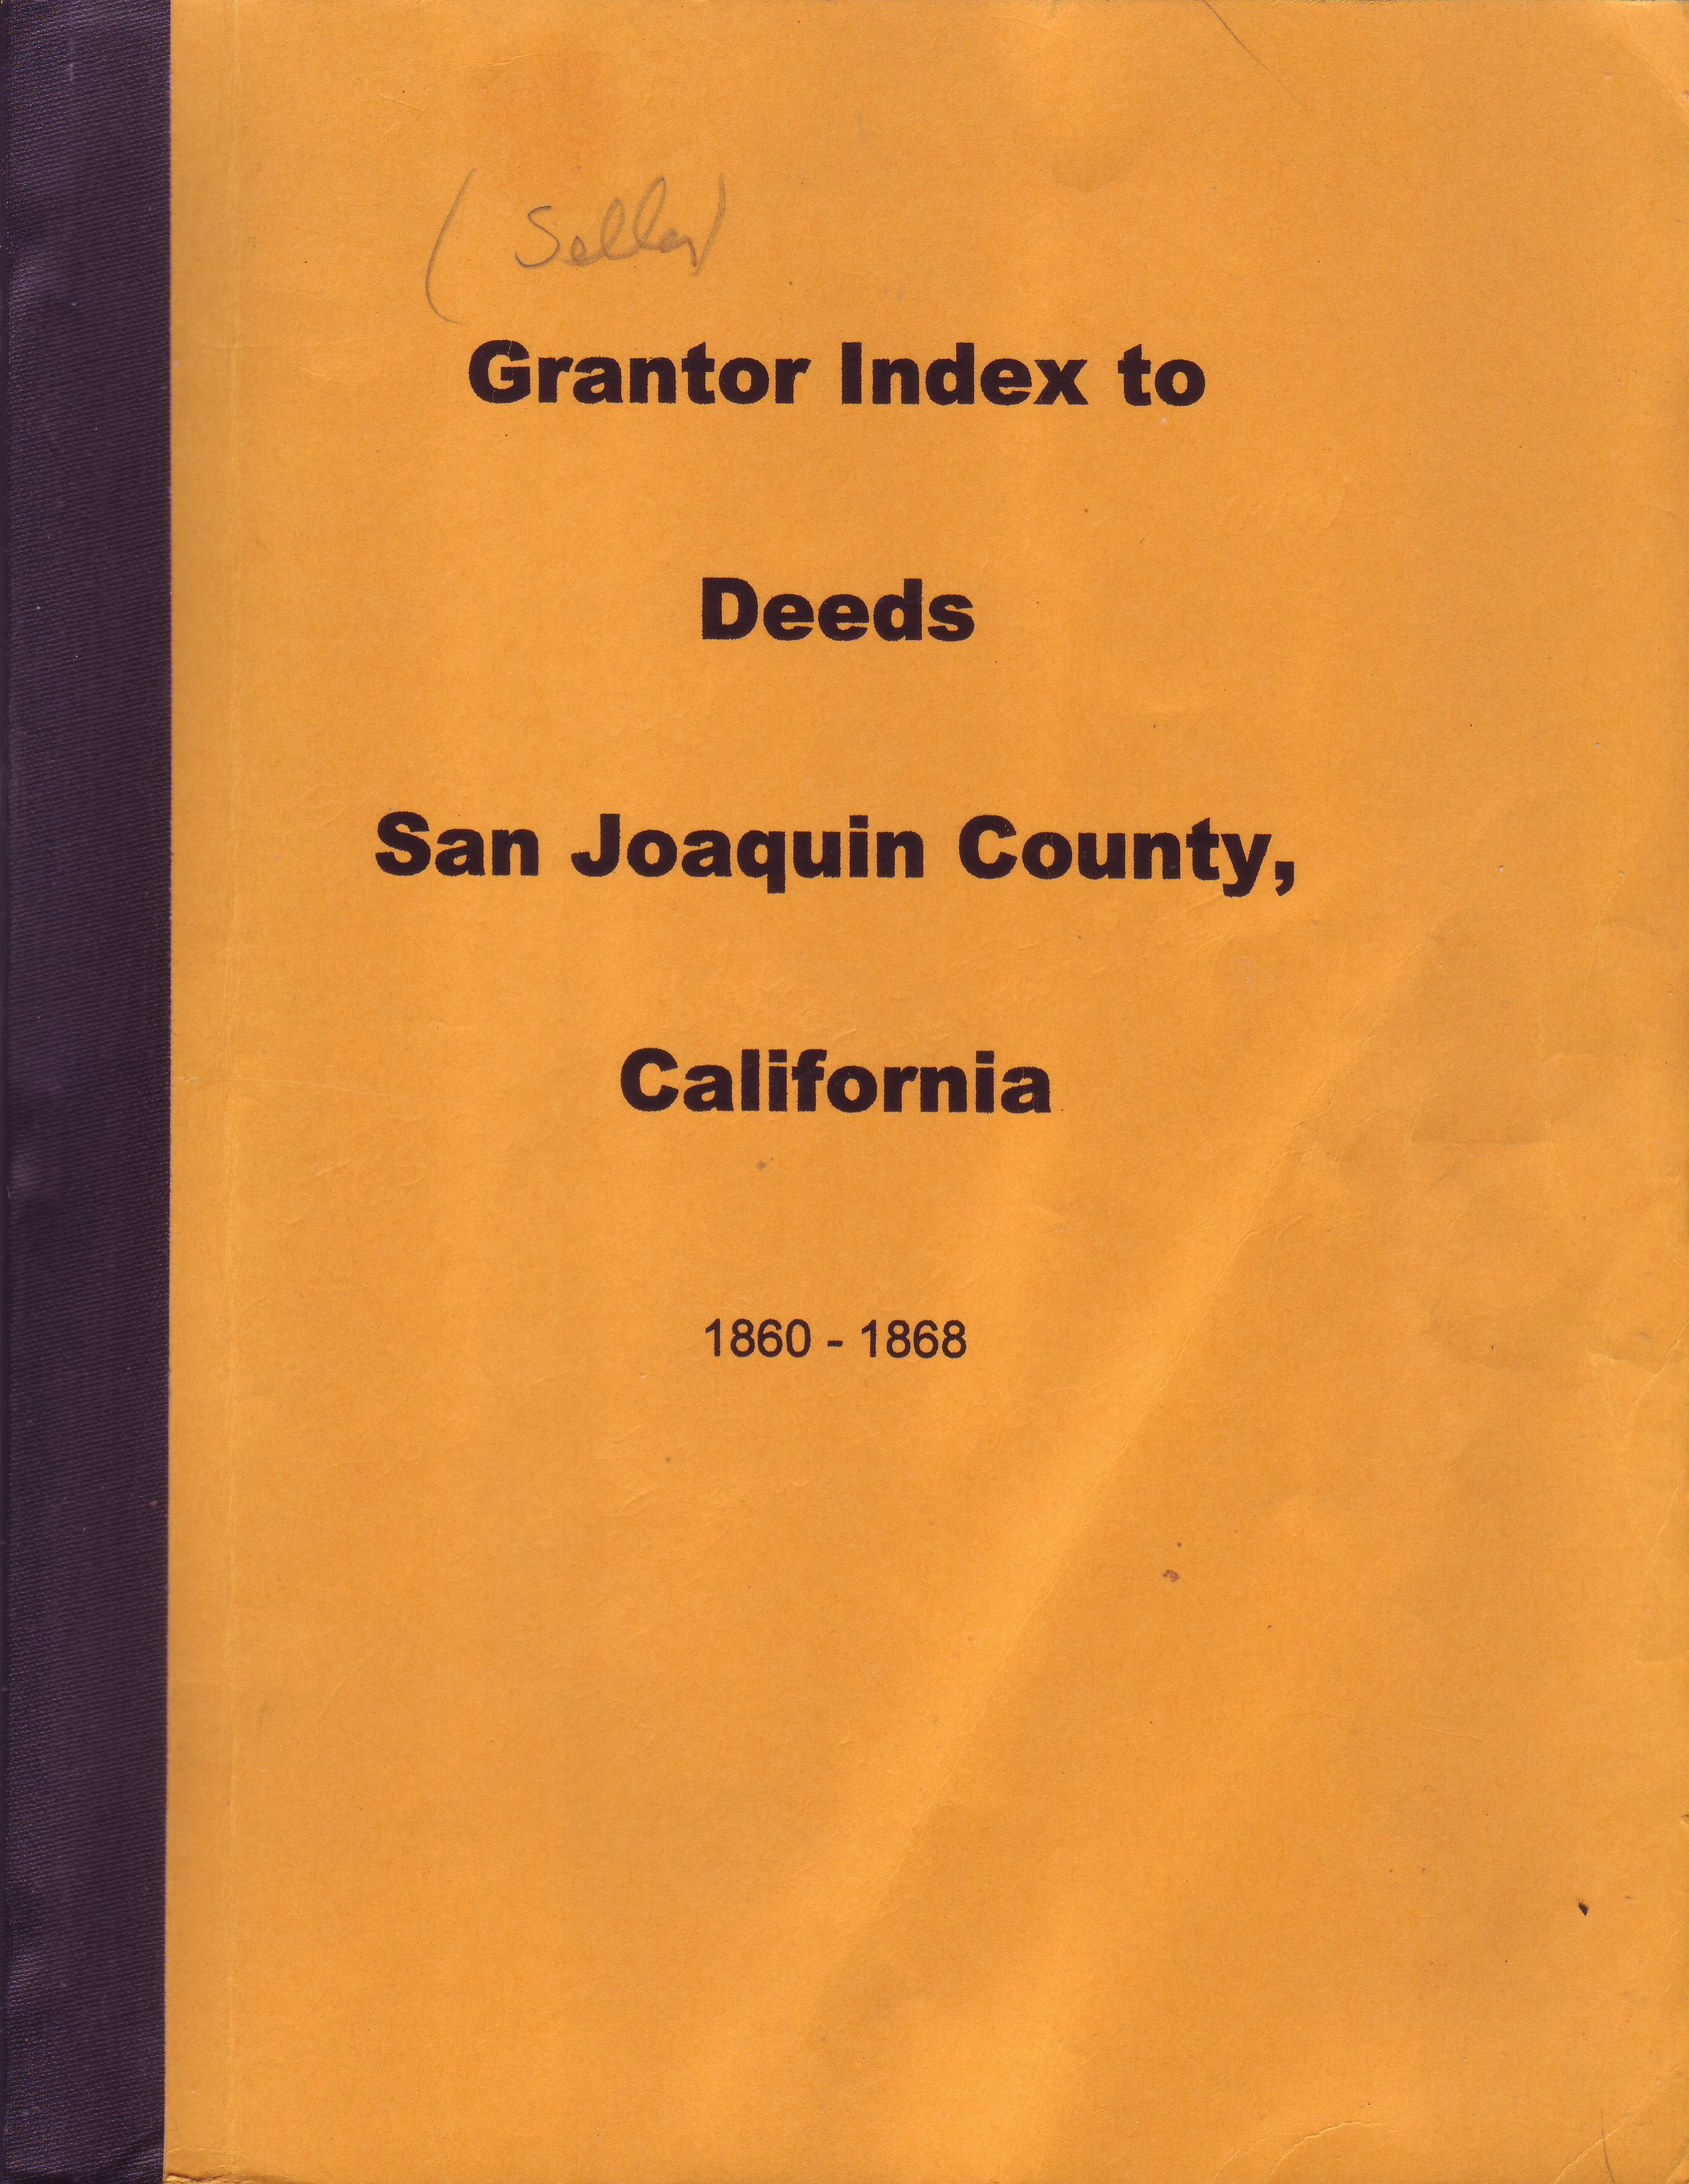 Grantor Index to Deeds, San Joaquin County, California, 1860-1868